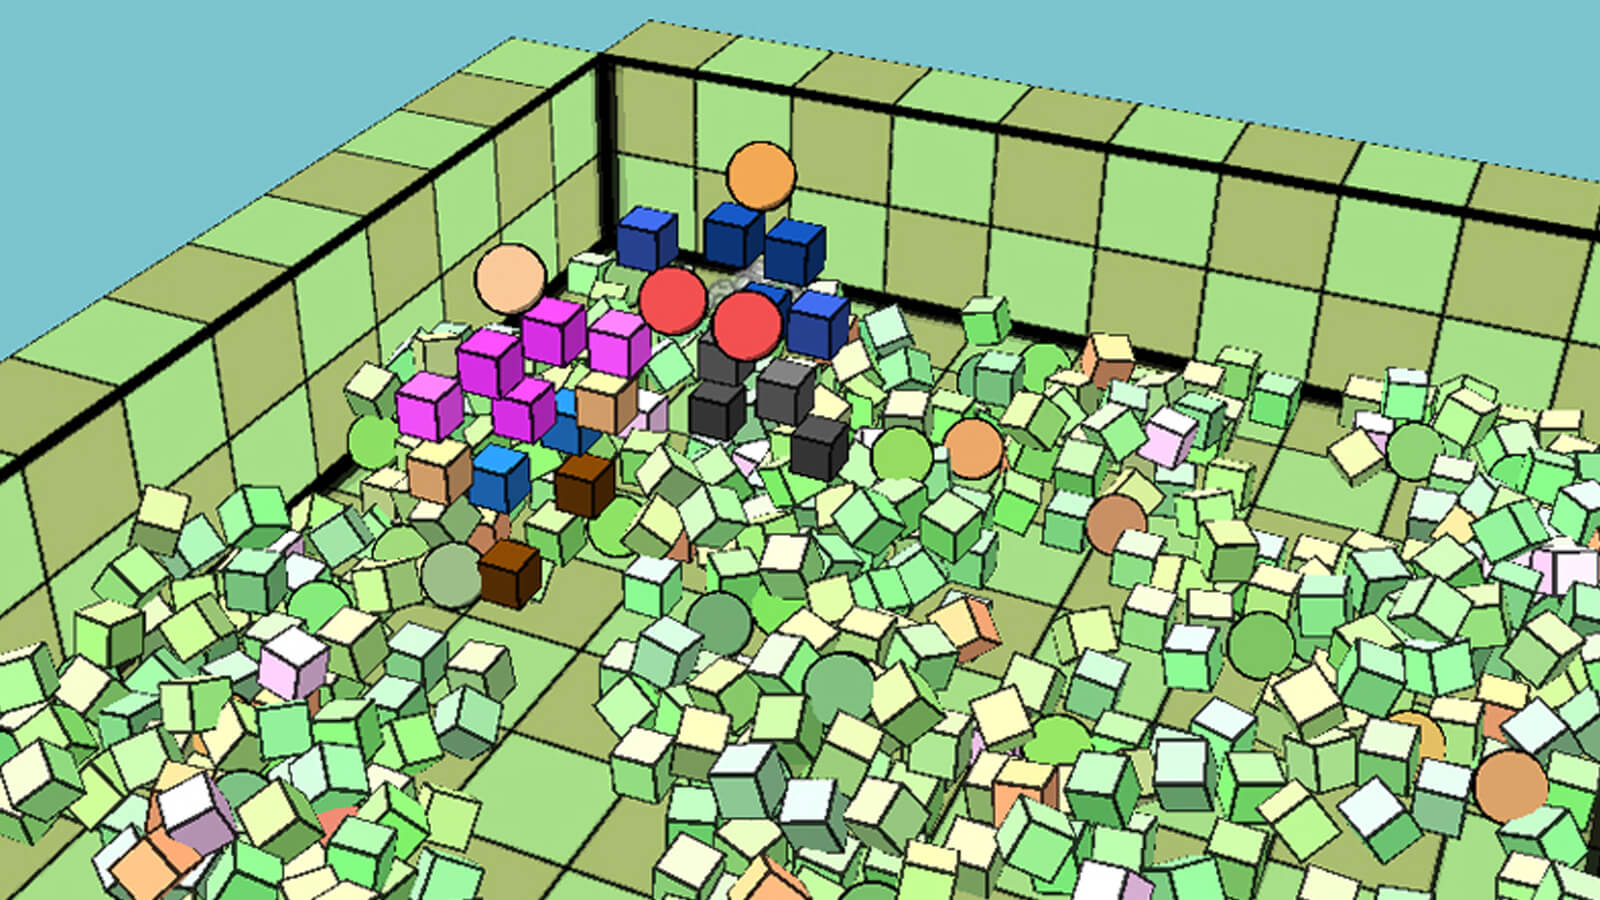 Two geometric people combat each other in a room littered with cubes.